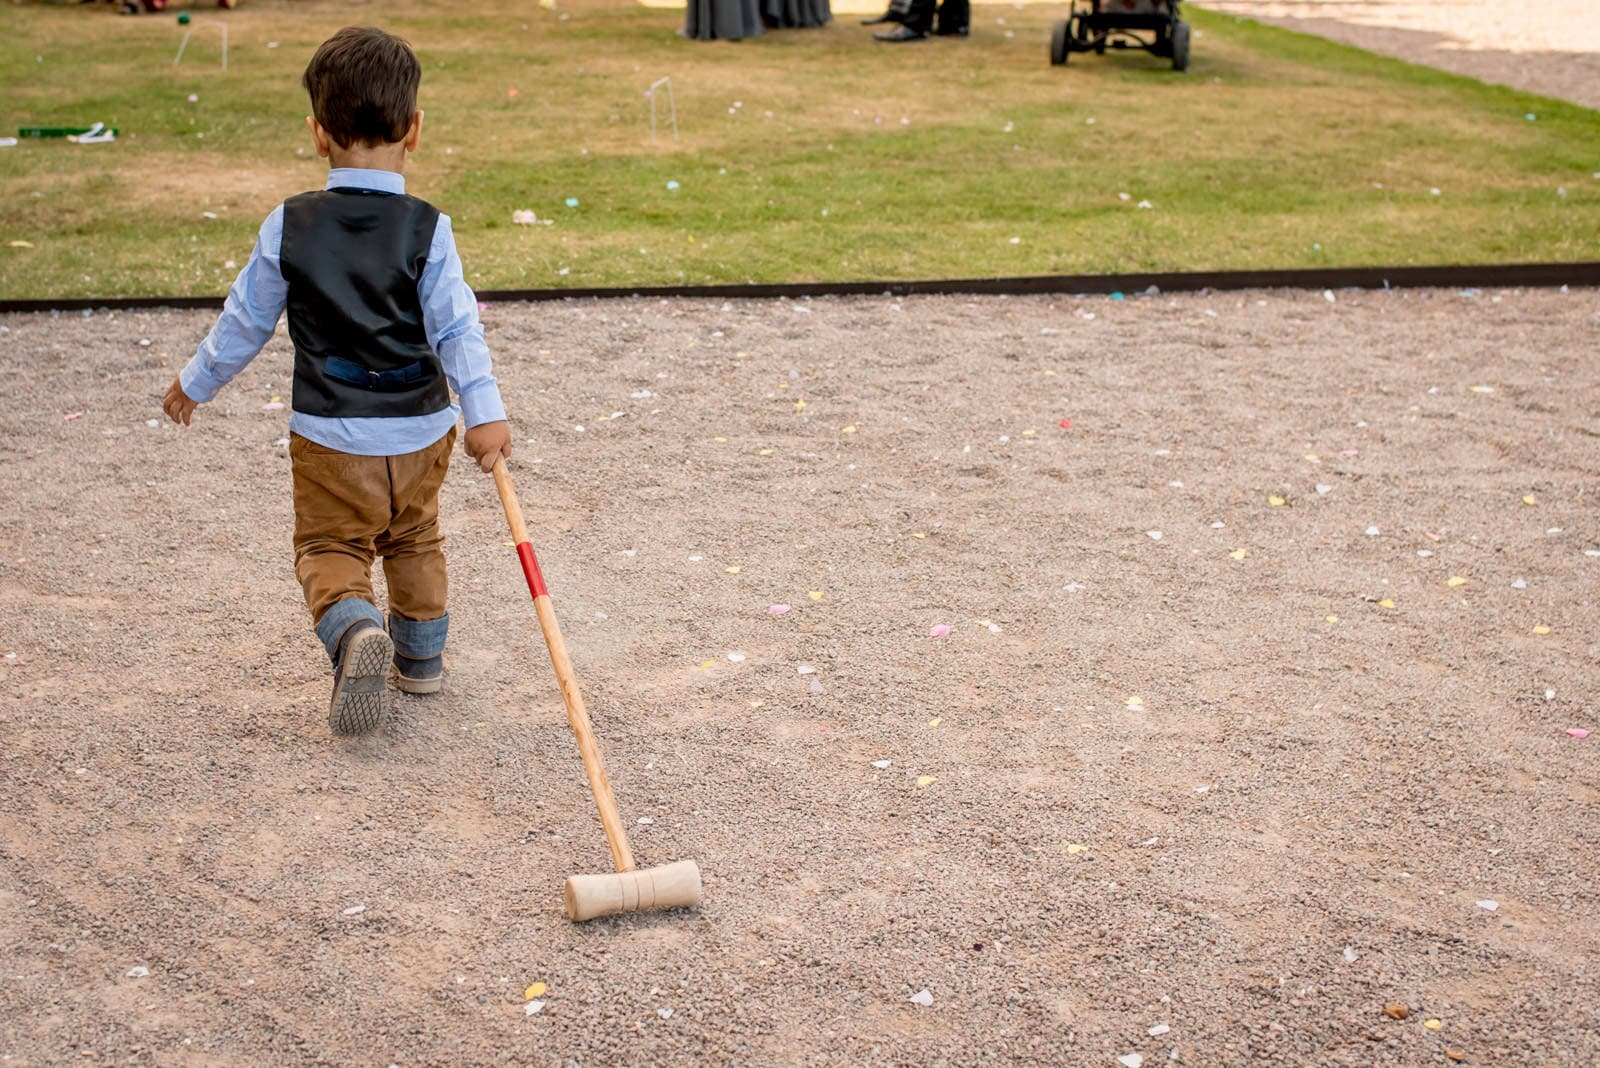 Kid walking with a croquet mallet during garden games at Moor Park Golf Club